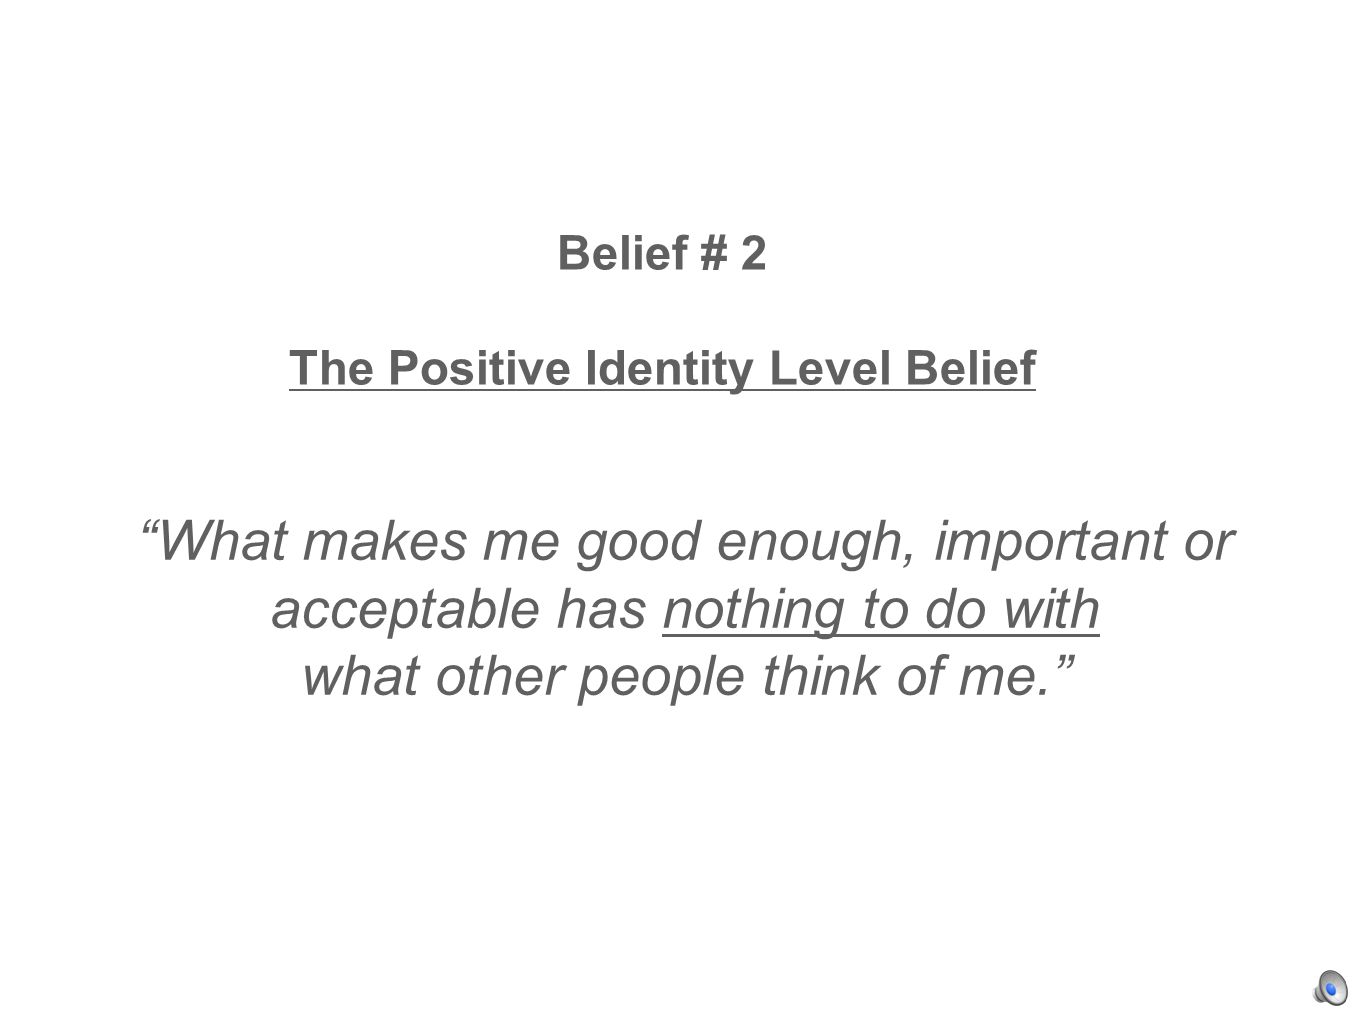 Belief # 2 The Positive Identity Level Belief What makes me good enough, important or acceptable has nothing to do with what other people think of me.